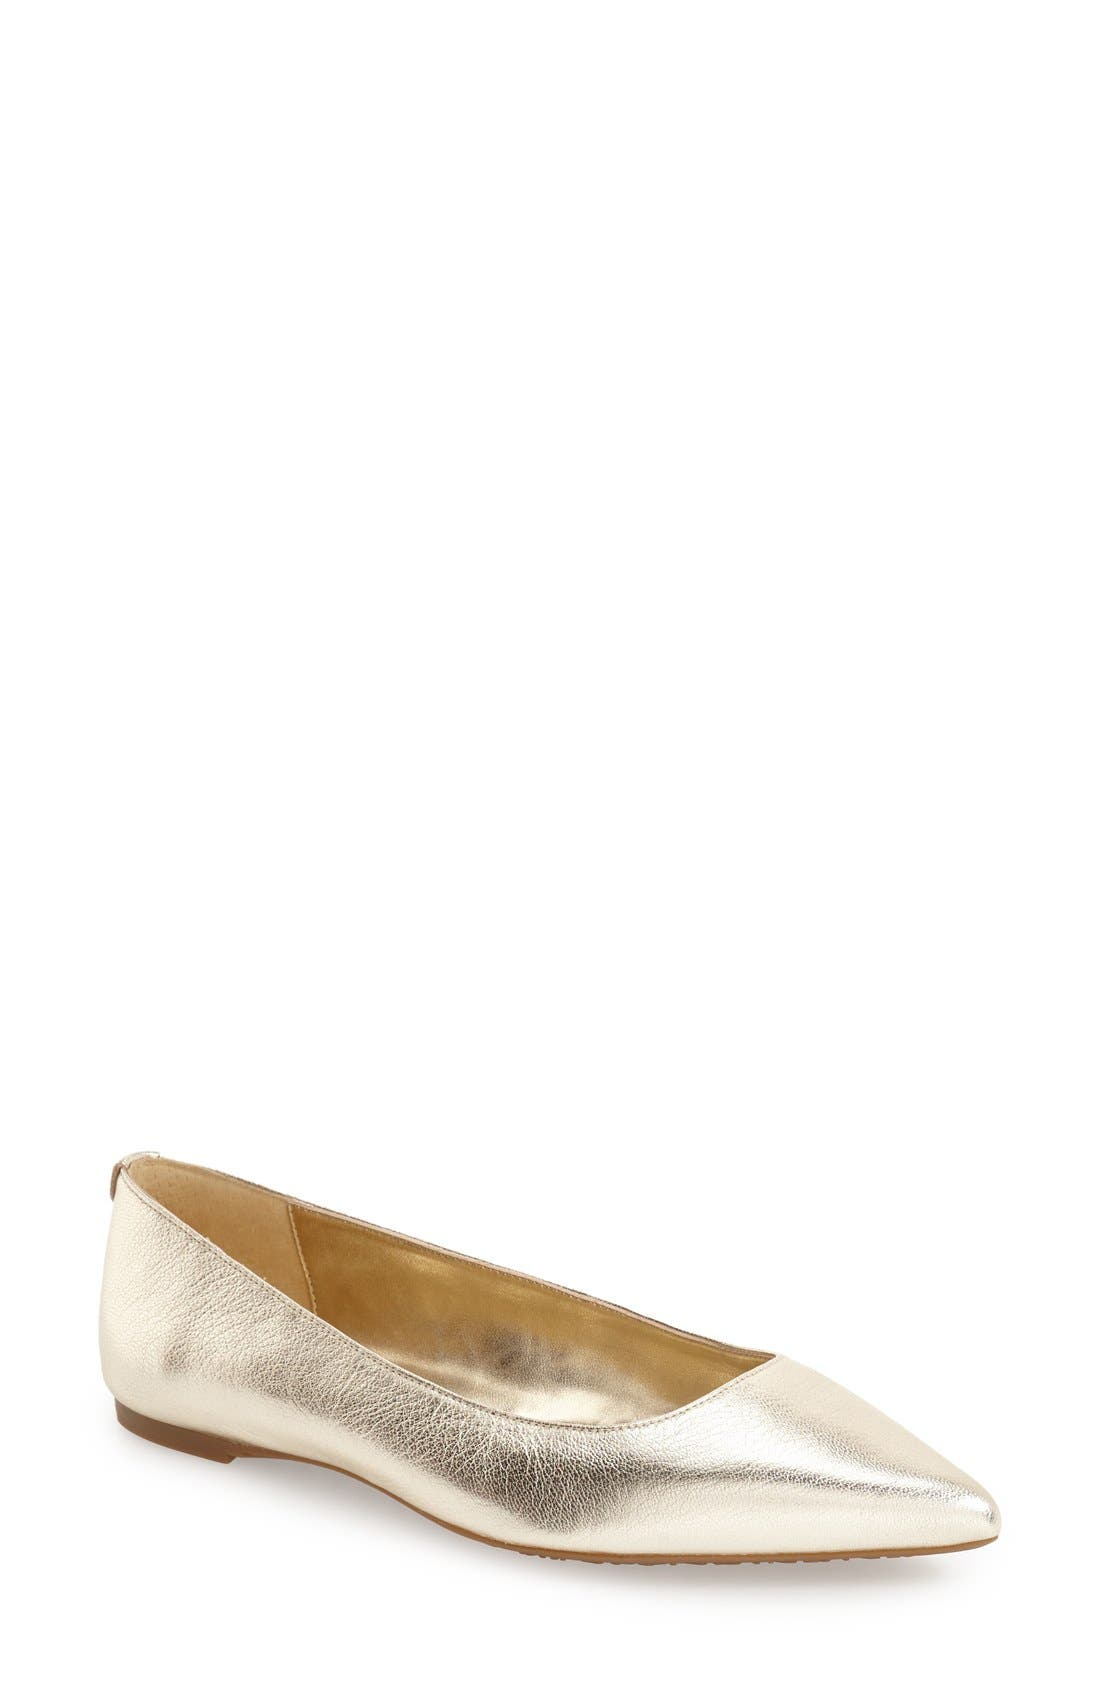 Alternate Image 1 Selected - MICHAEL MIchael Kors 'Arianna' Pointy Toe Flat (Women)